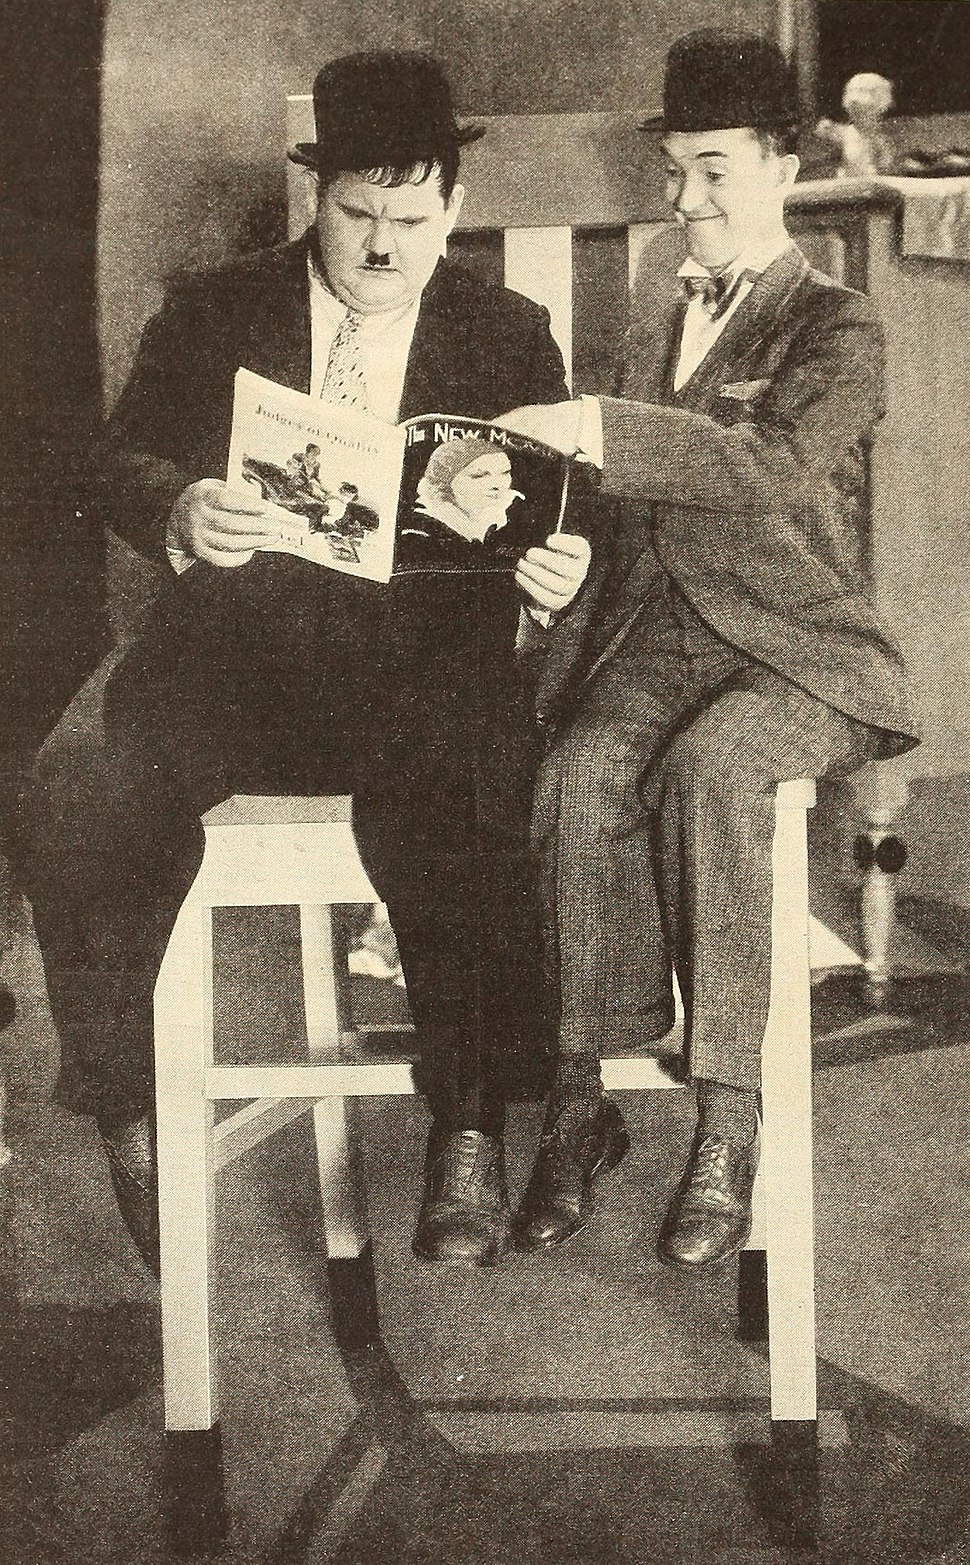 Laurel & Hardy reading The New Movie